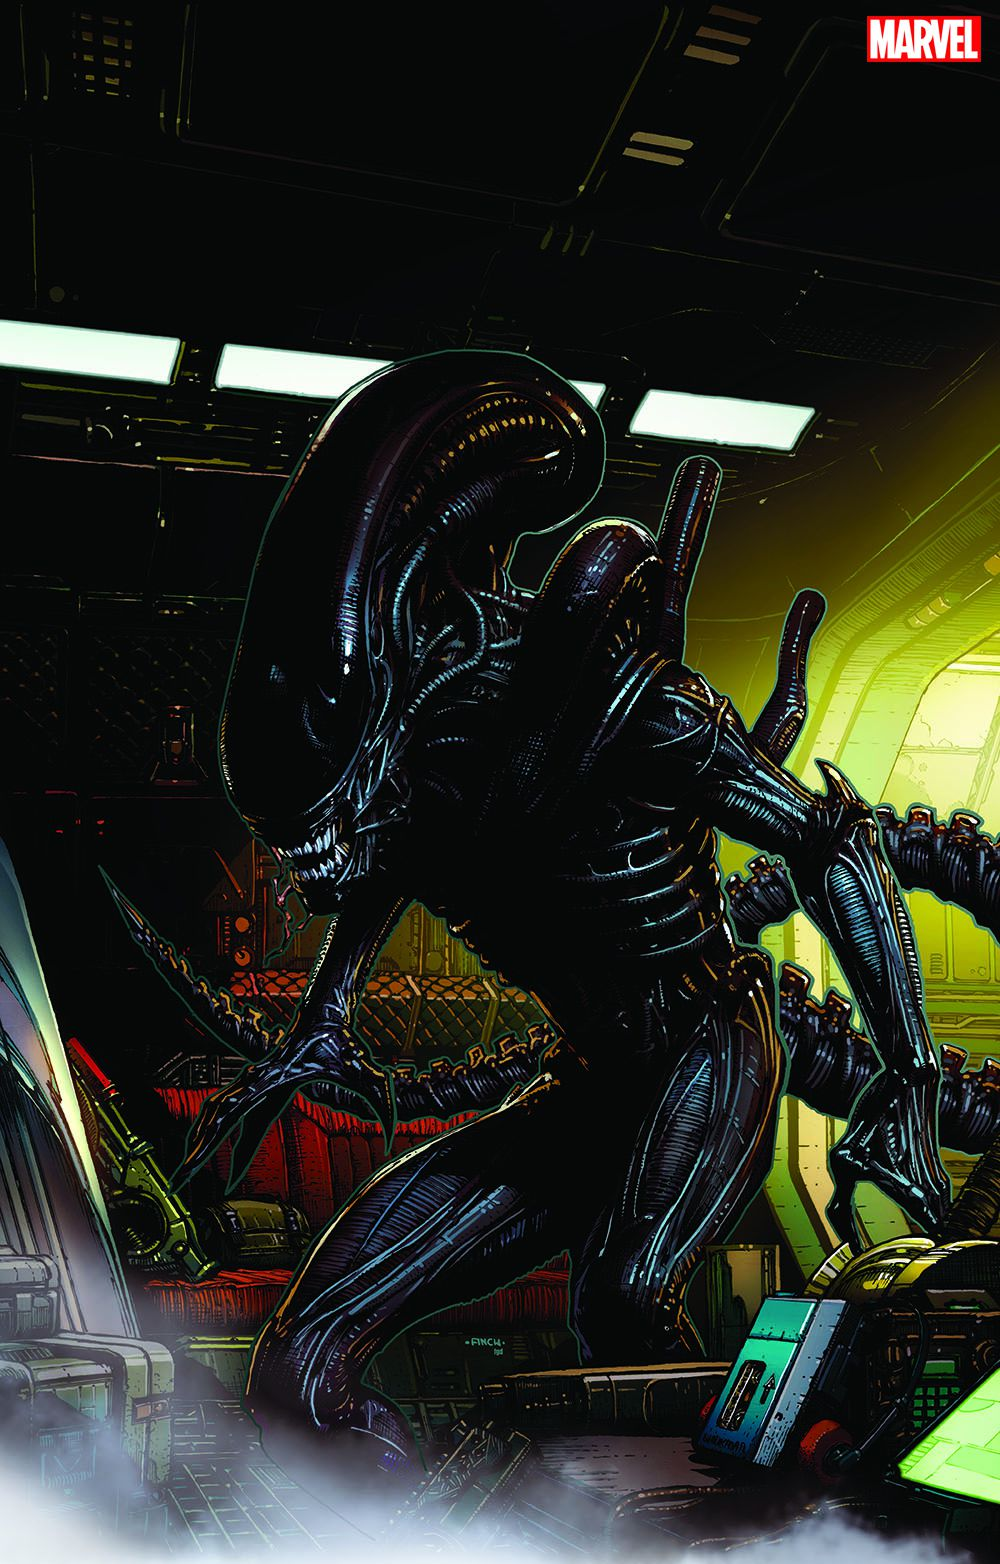 """Marvel hasn't released any specific tiles or creative teams to work on projects related to the characters. But the company released some teaser images that show Alien's """"Big Chap"""" Xenomorph and Predator, who appears to targeting the Avengers in the photo."""